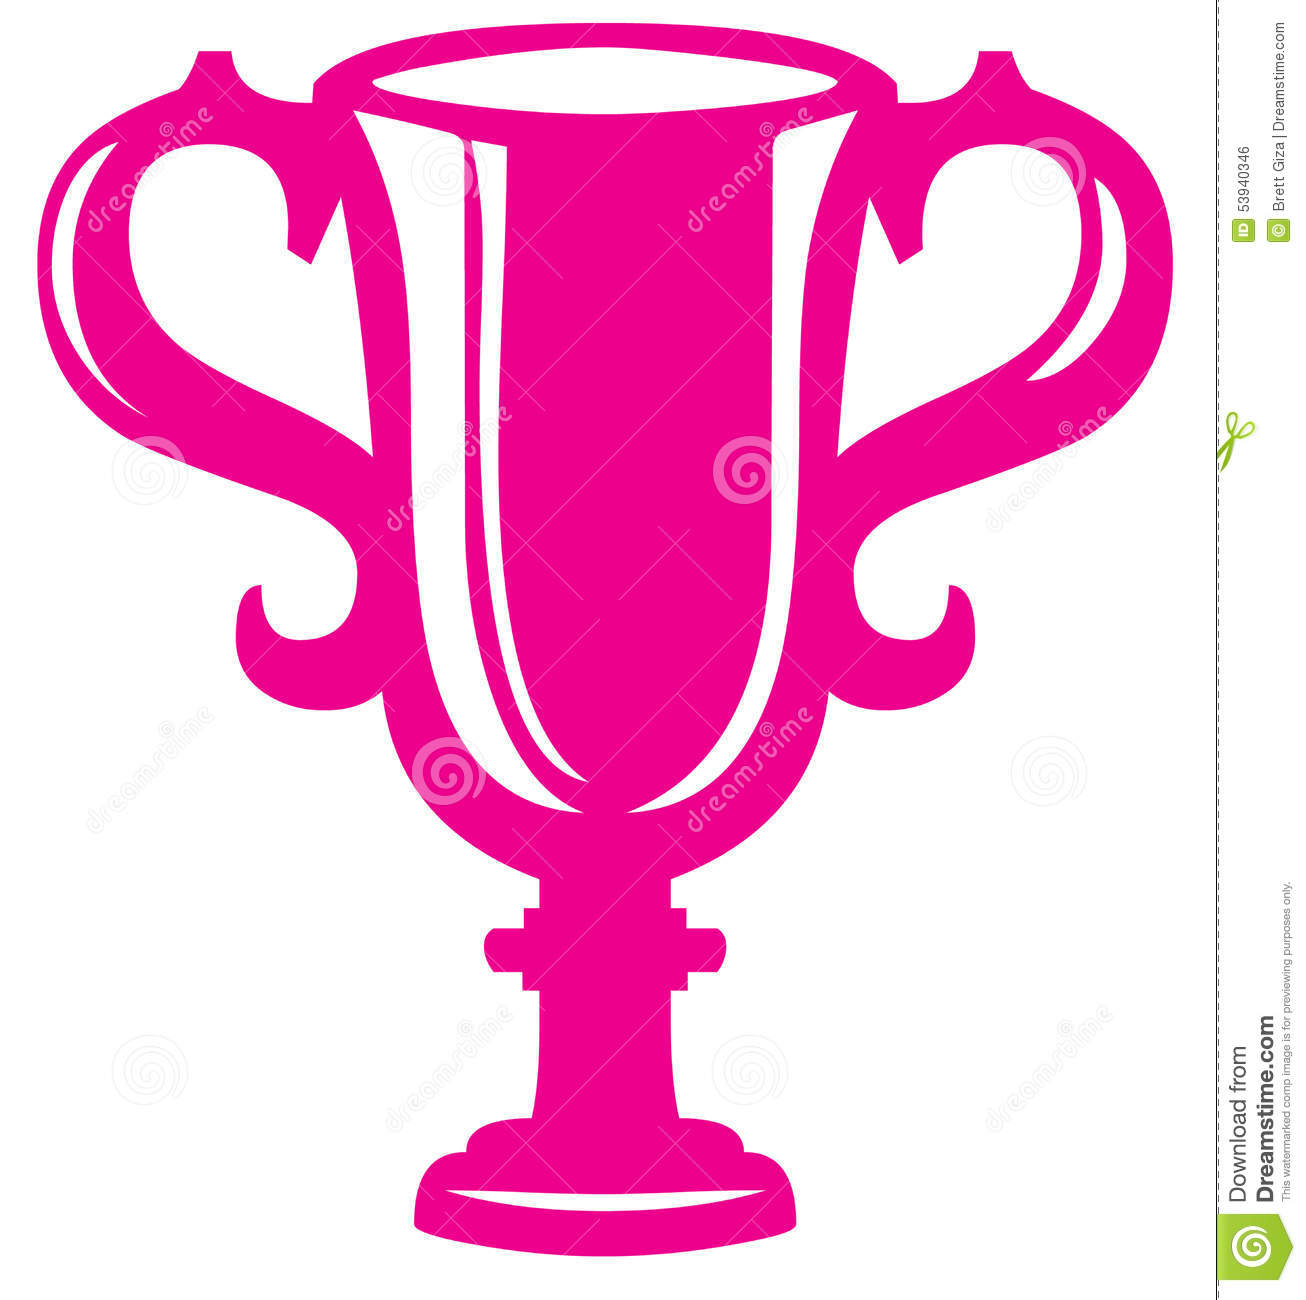 Royalty Free Stock Image: Pink Trophy. Image: 53940346 Golf Ball On Tee Clipart